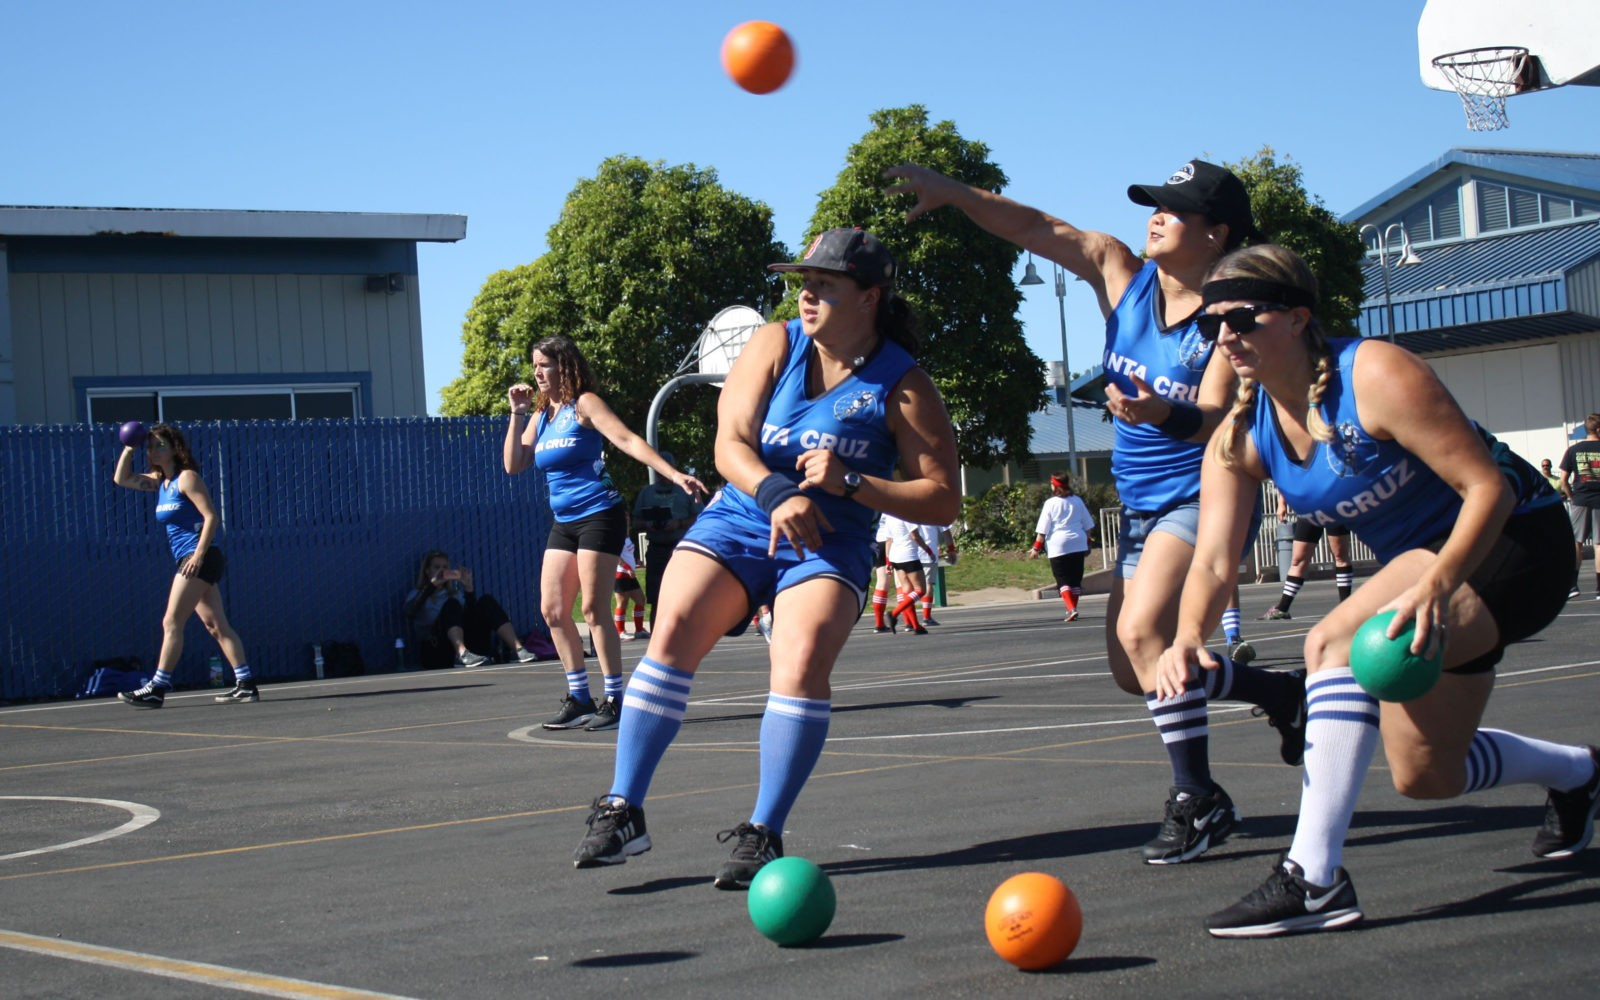 2nd Annual Dodge For a Cause: Dodgeball Tournament presented